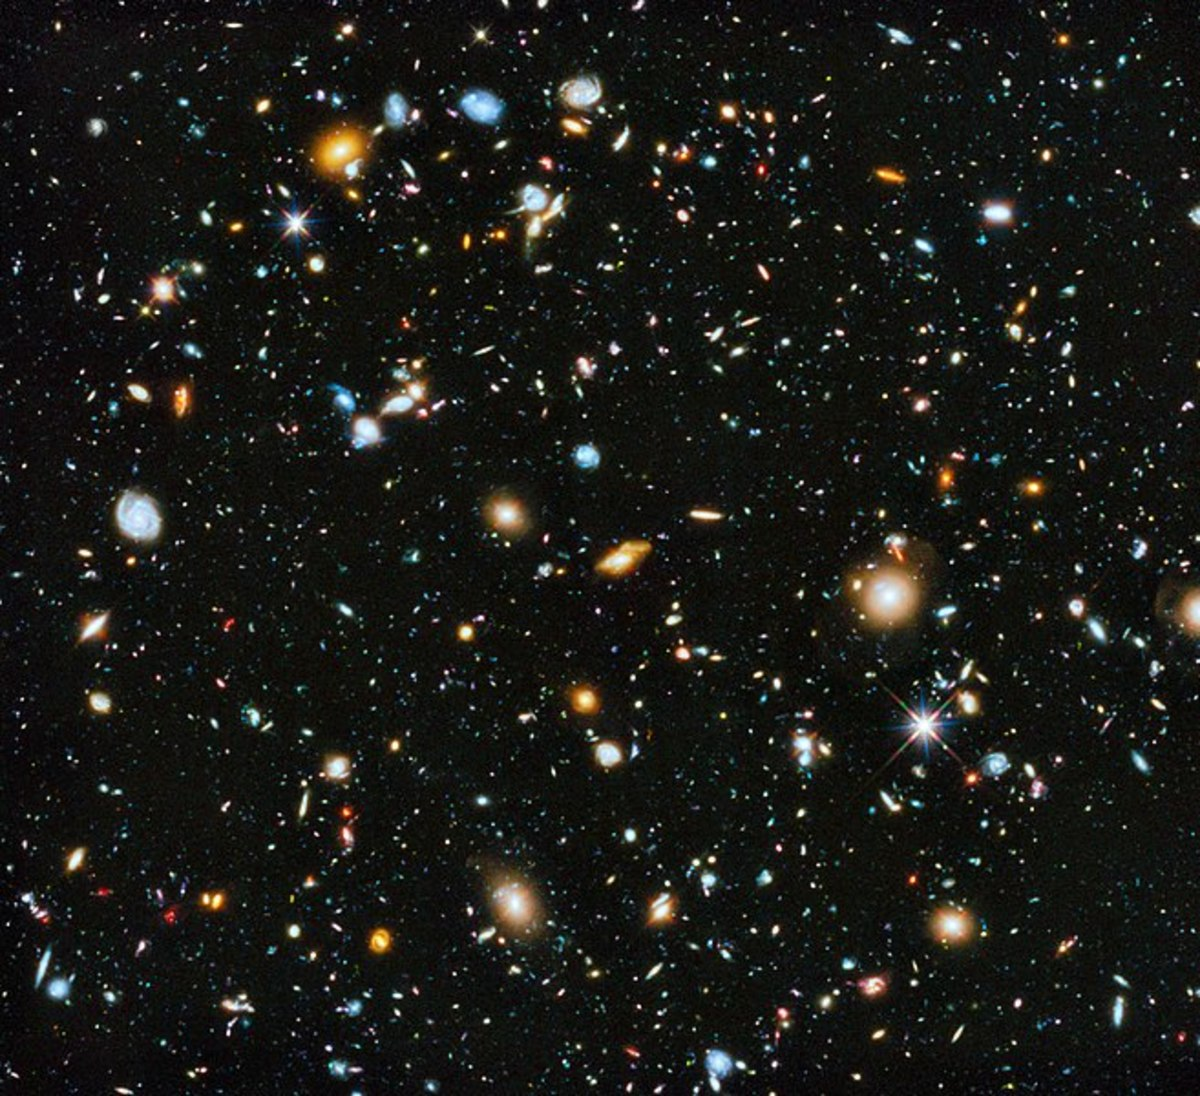 Good news for chronic Postal backtrackers - NASA recently discovered a parallel universe where time goes backwards.  But can you afford the ticket?